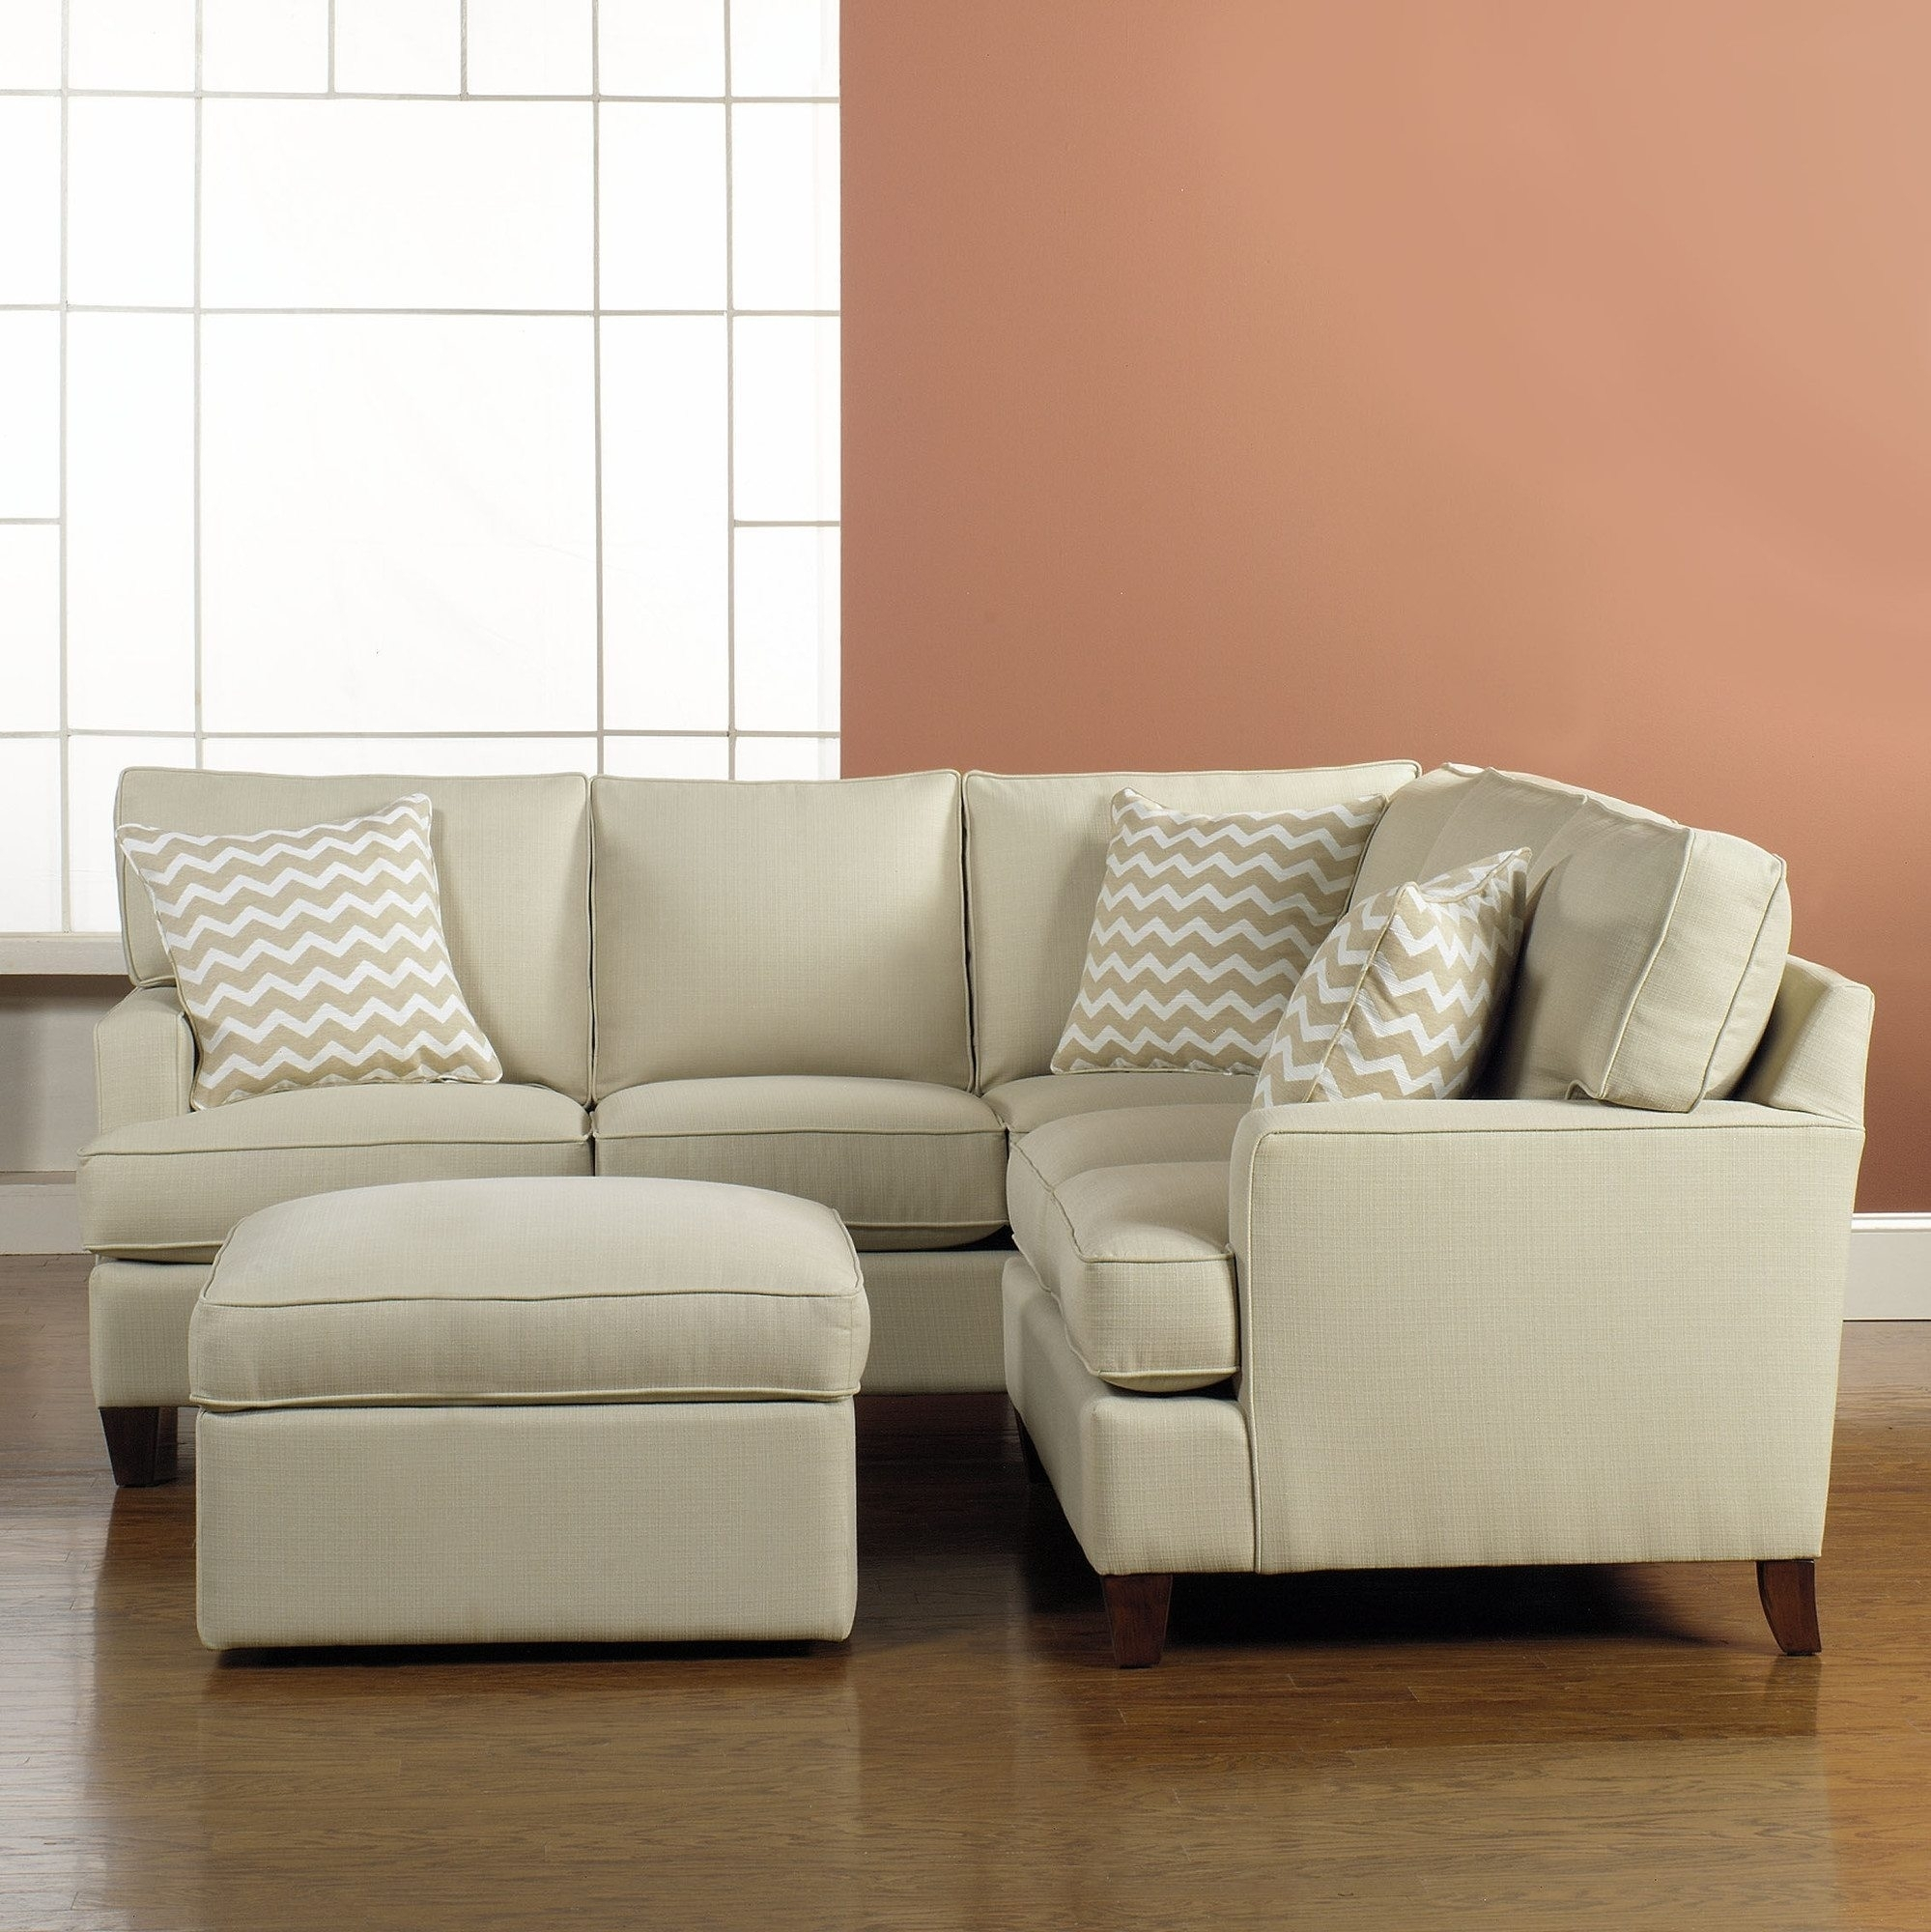 Collection Sectional Sofas Rochester Ny – Mediasupload Regarding Rochester Ny Sectional Sofas (Image 4 of 10)